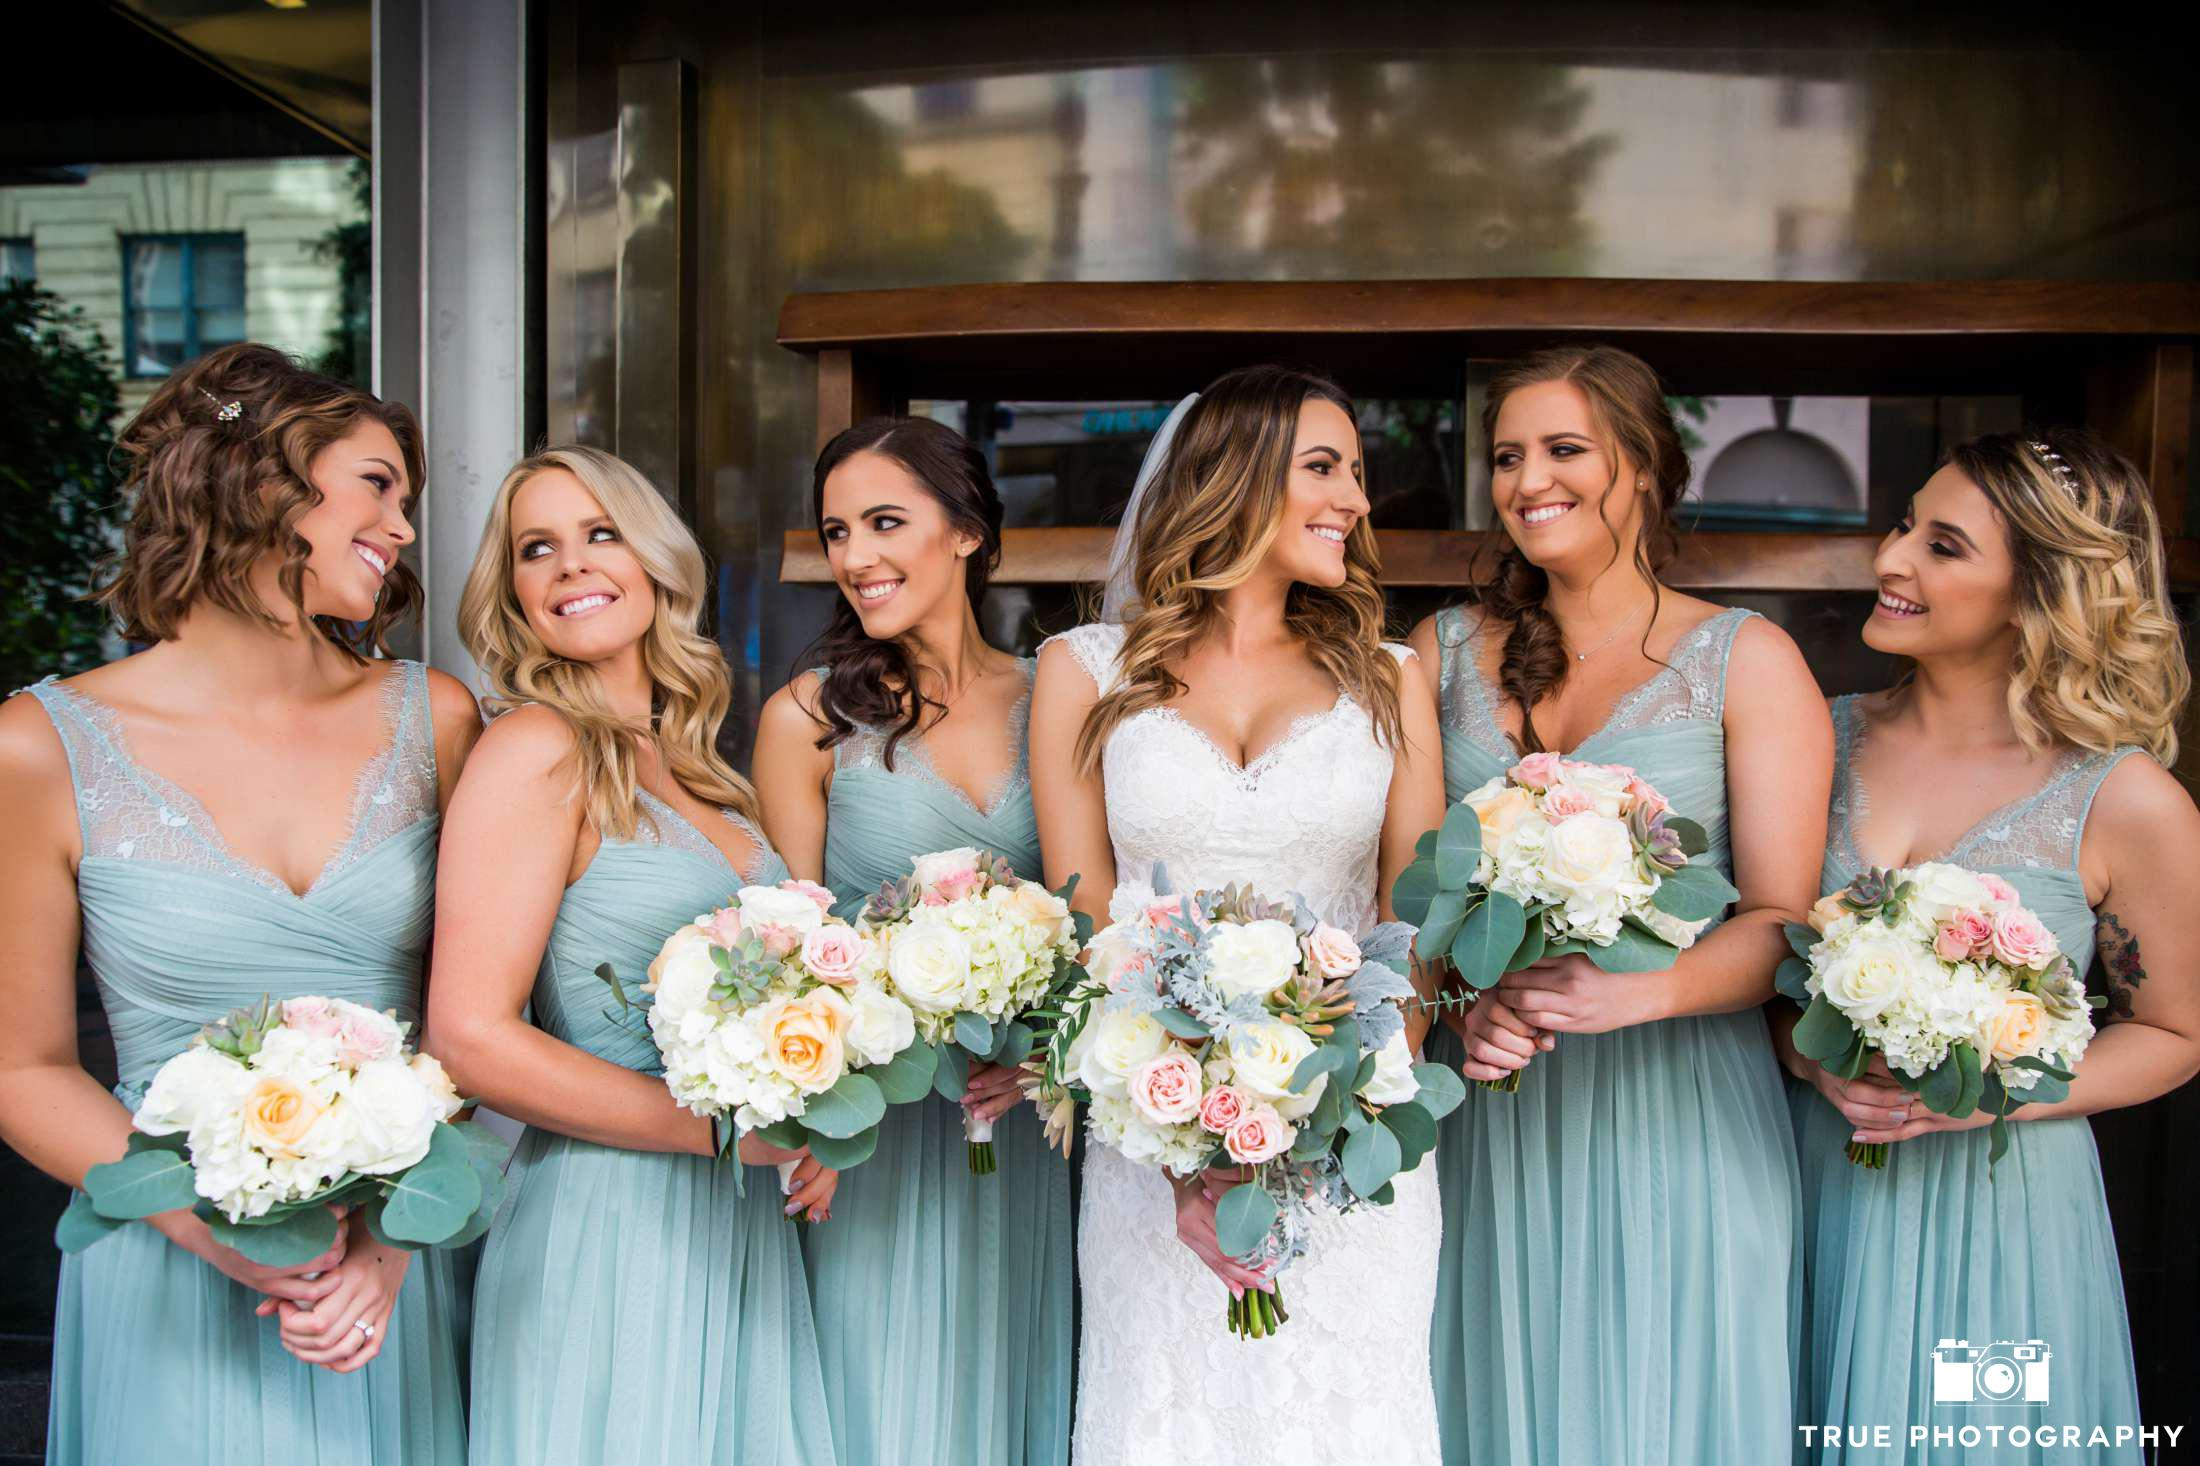 Photography  True Photography ||  Wedding Dress  BHLDN ||  Makeup  Shelby McElroy ||  Hair  Jessica Tyransky Hair & Makeup ||  Bridesmaids Dresses  BHLDN || Click  here  for more of this wedding.